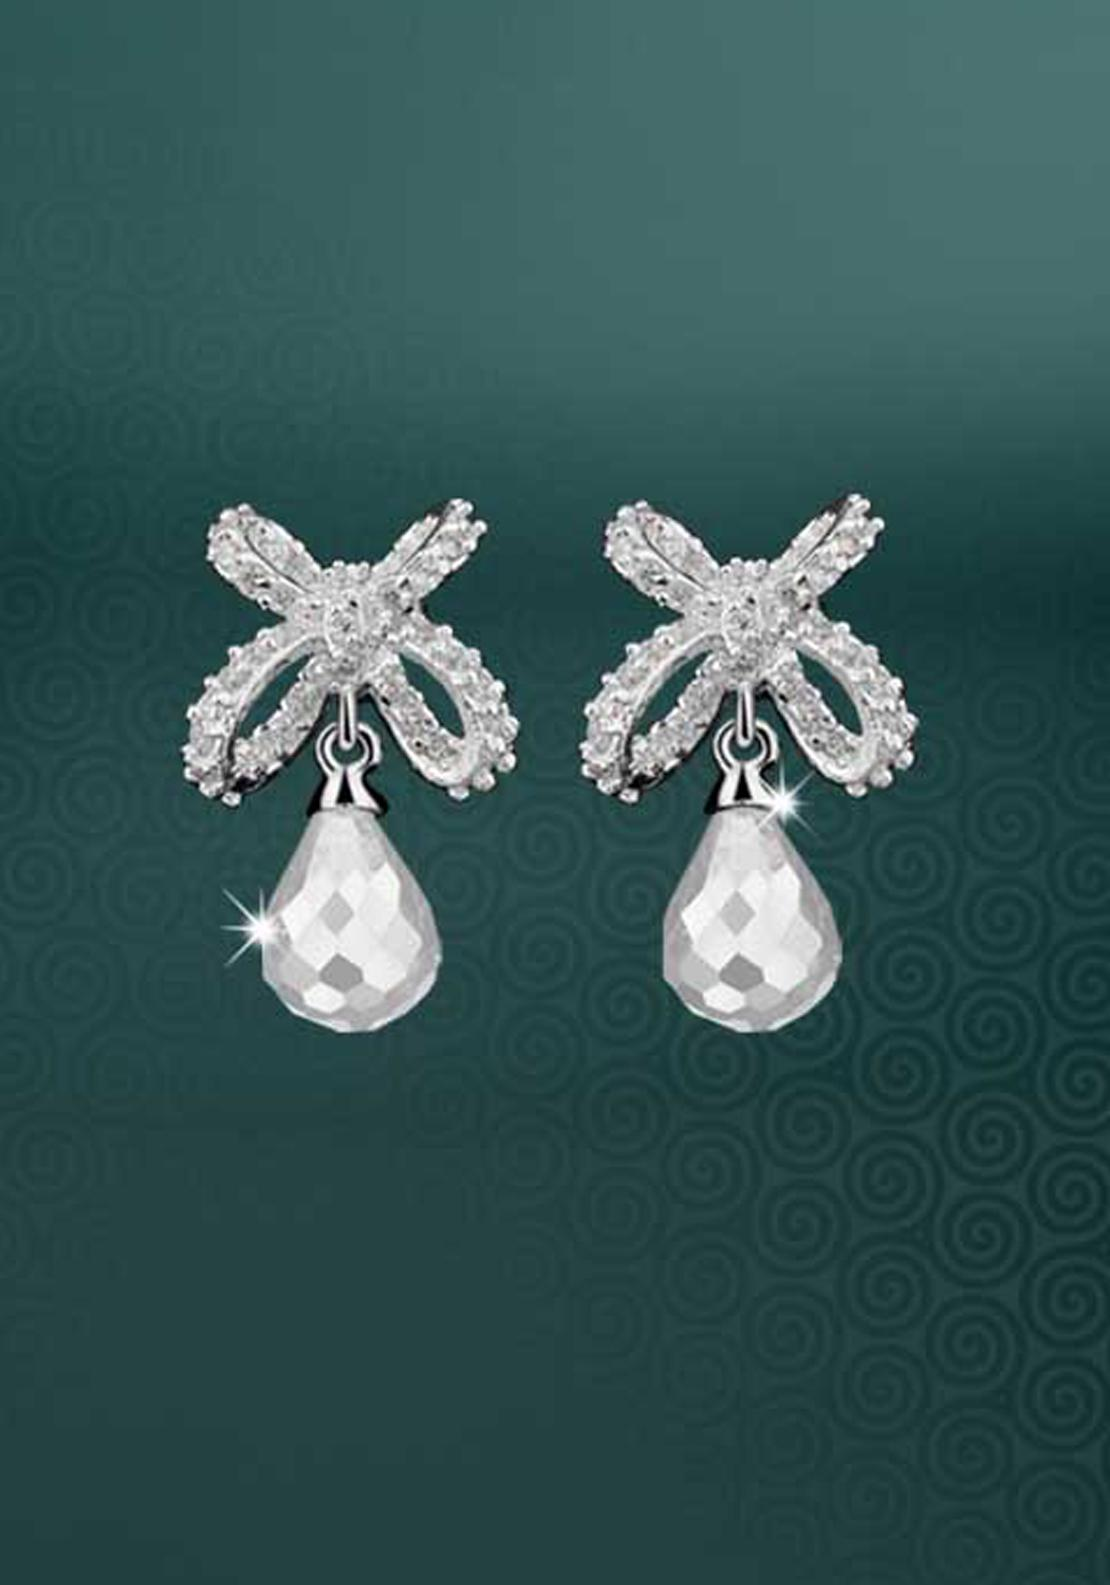 Newbridge Maureen O'Hara Drop Earrings, Silver / Clear